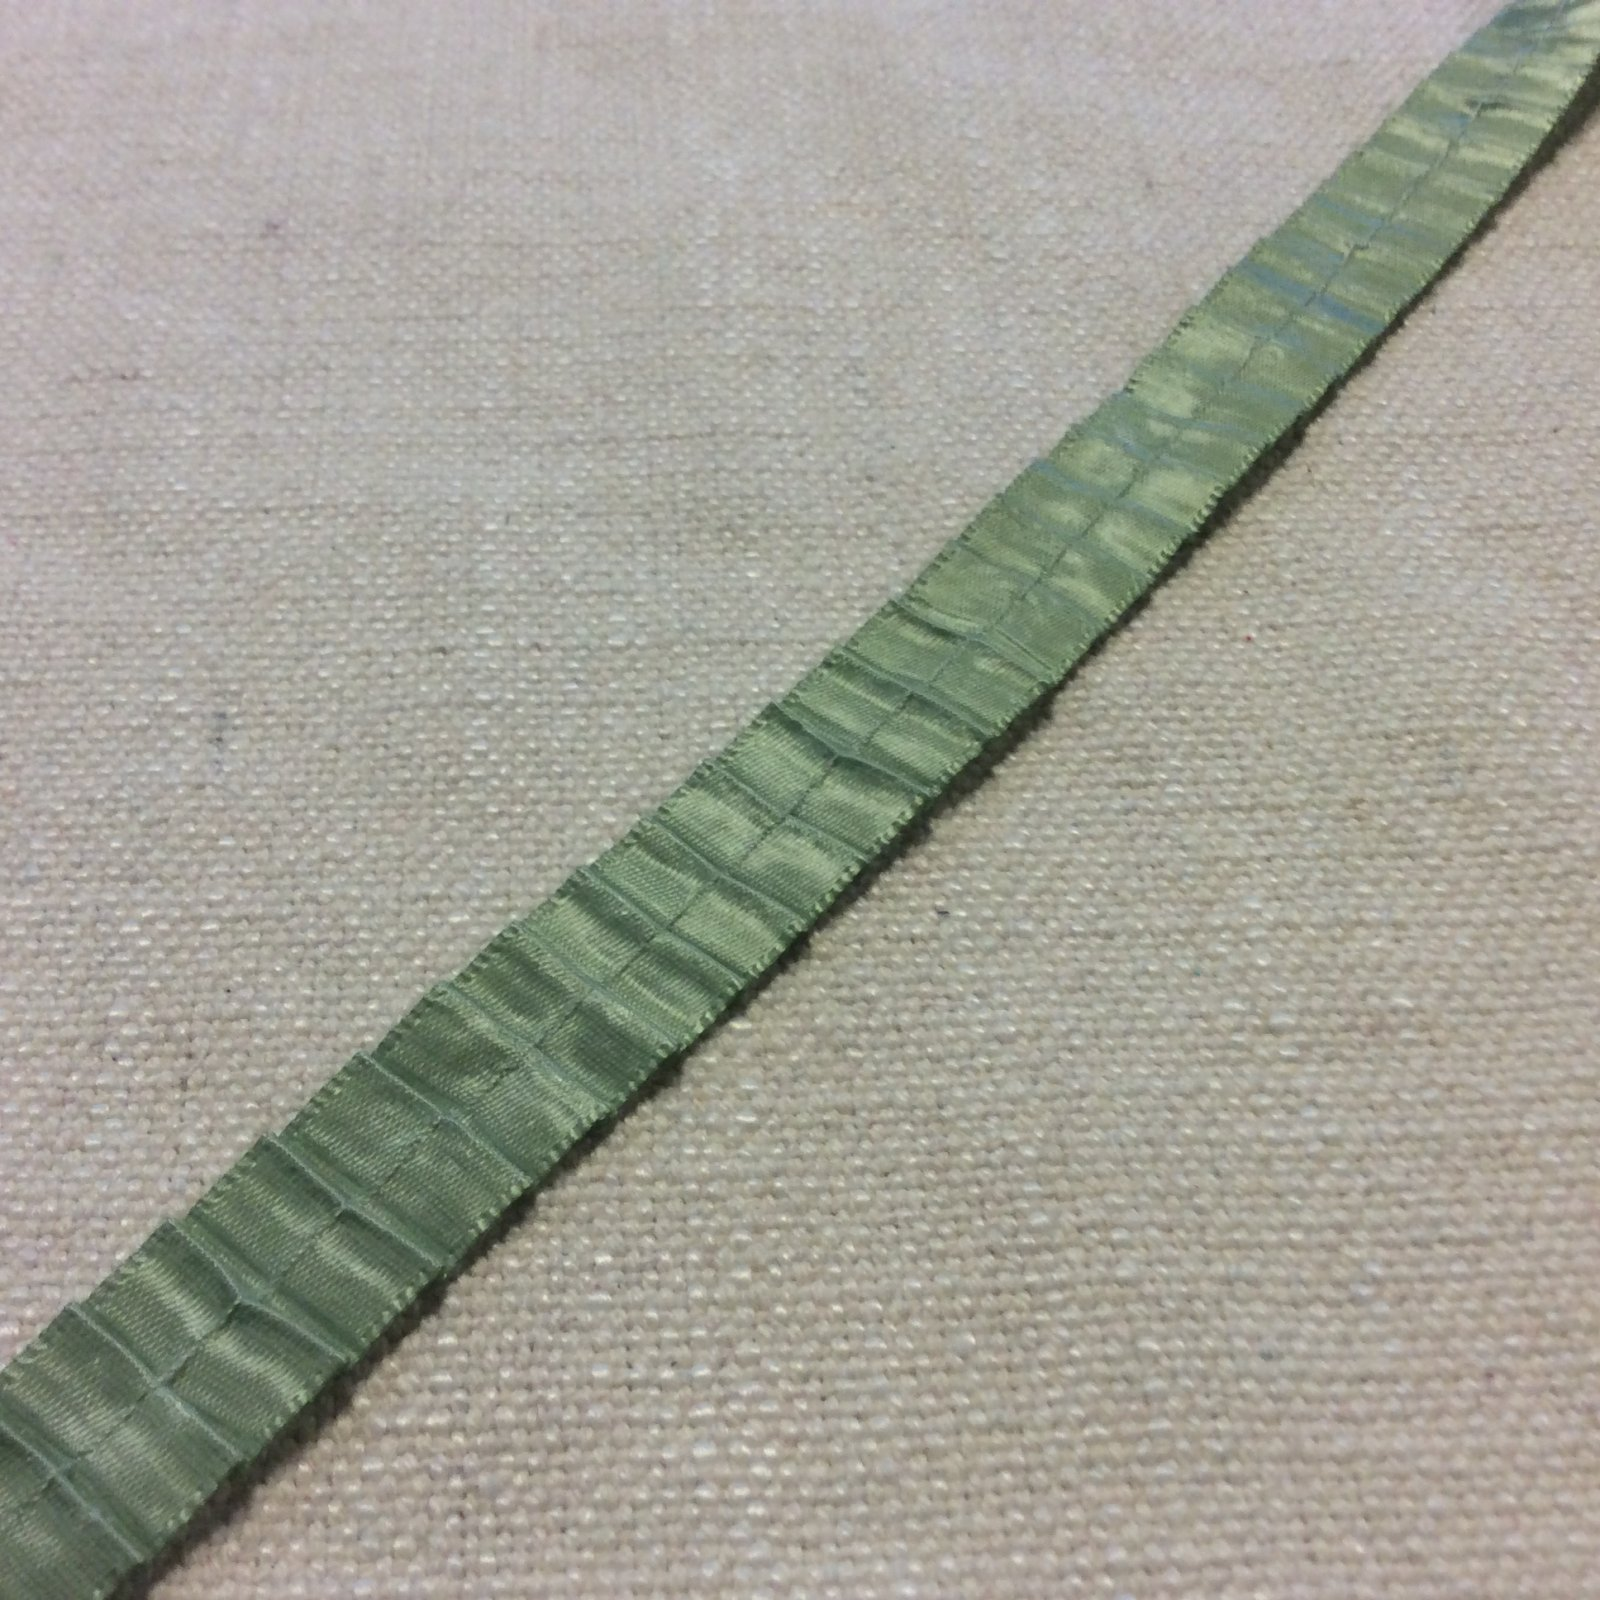 Satin Pleated Ruffle Ribbon 5/8 Celadon Green Apparel Trim Ribbon RIB1252